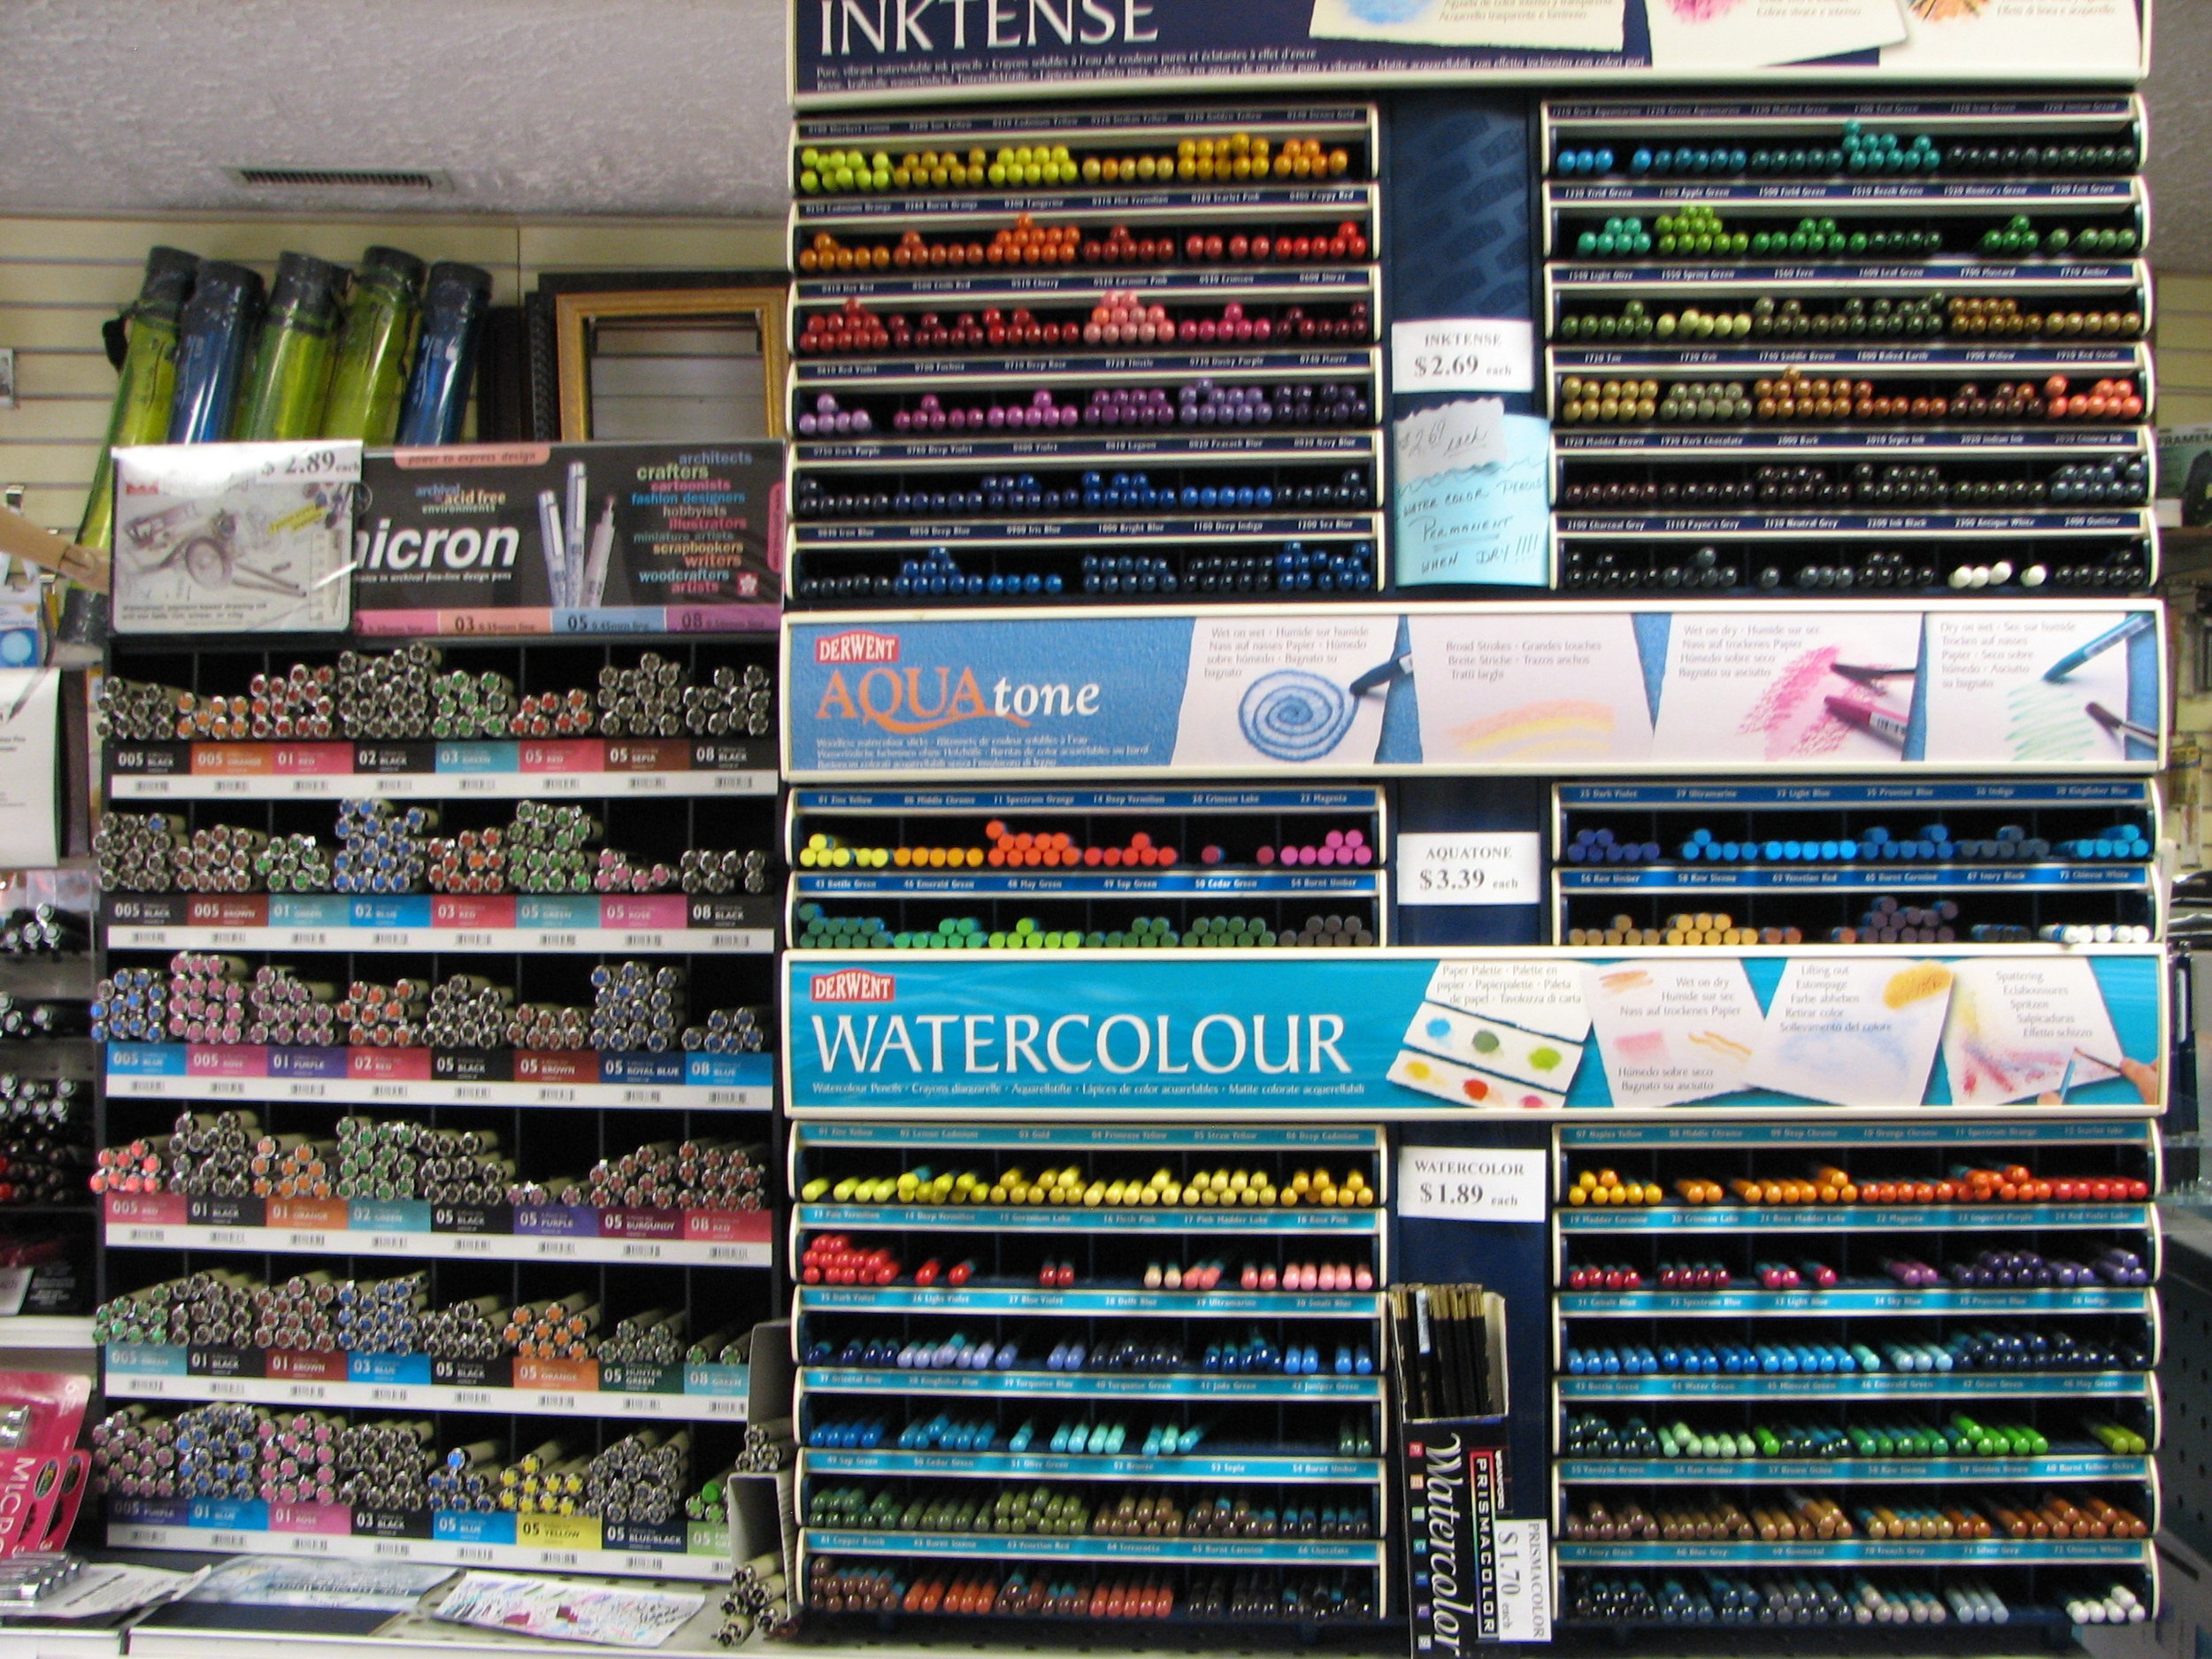 Derwent Inktense pencils and sets, Derwent Watercolor pencils and sets, Micron Markers and sets